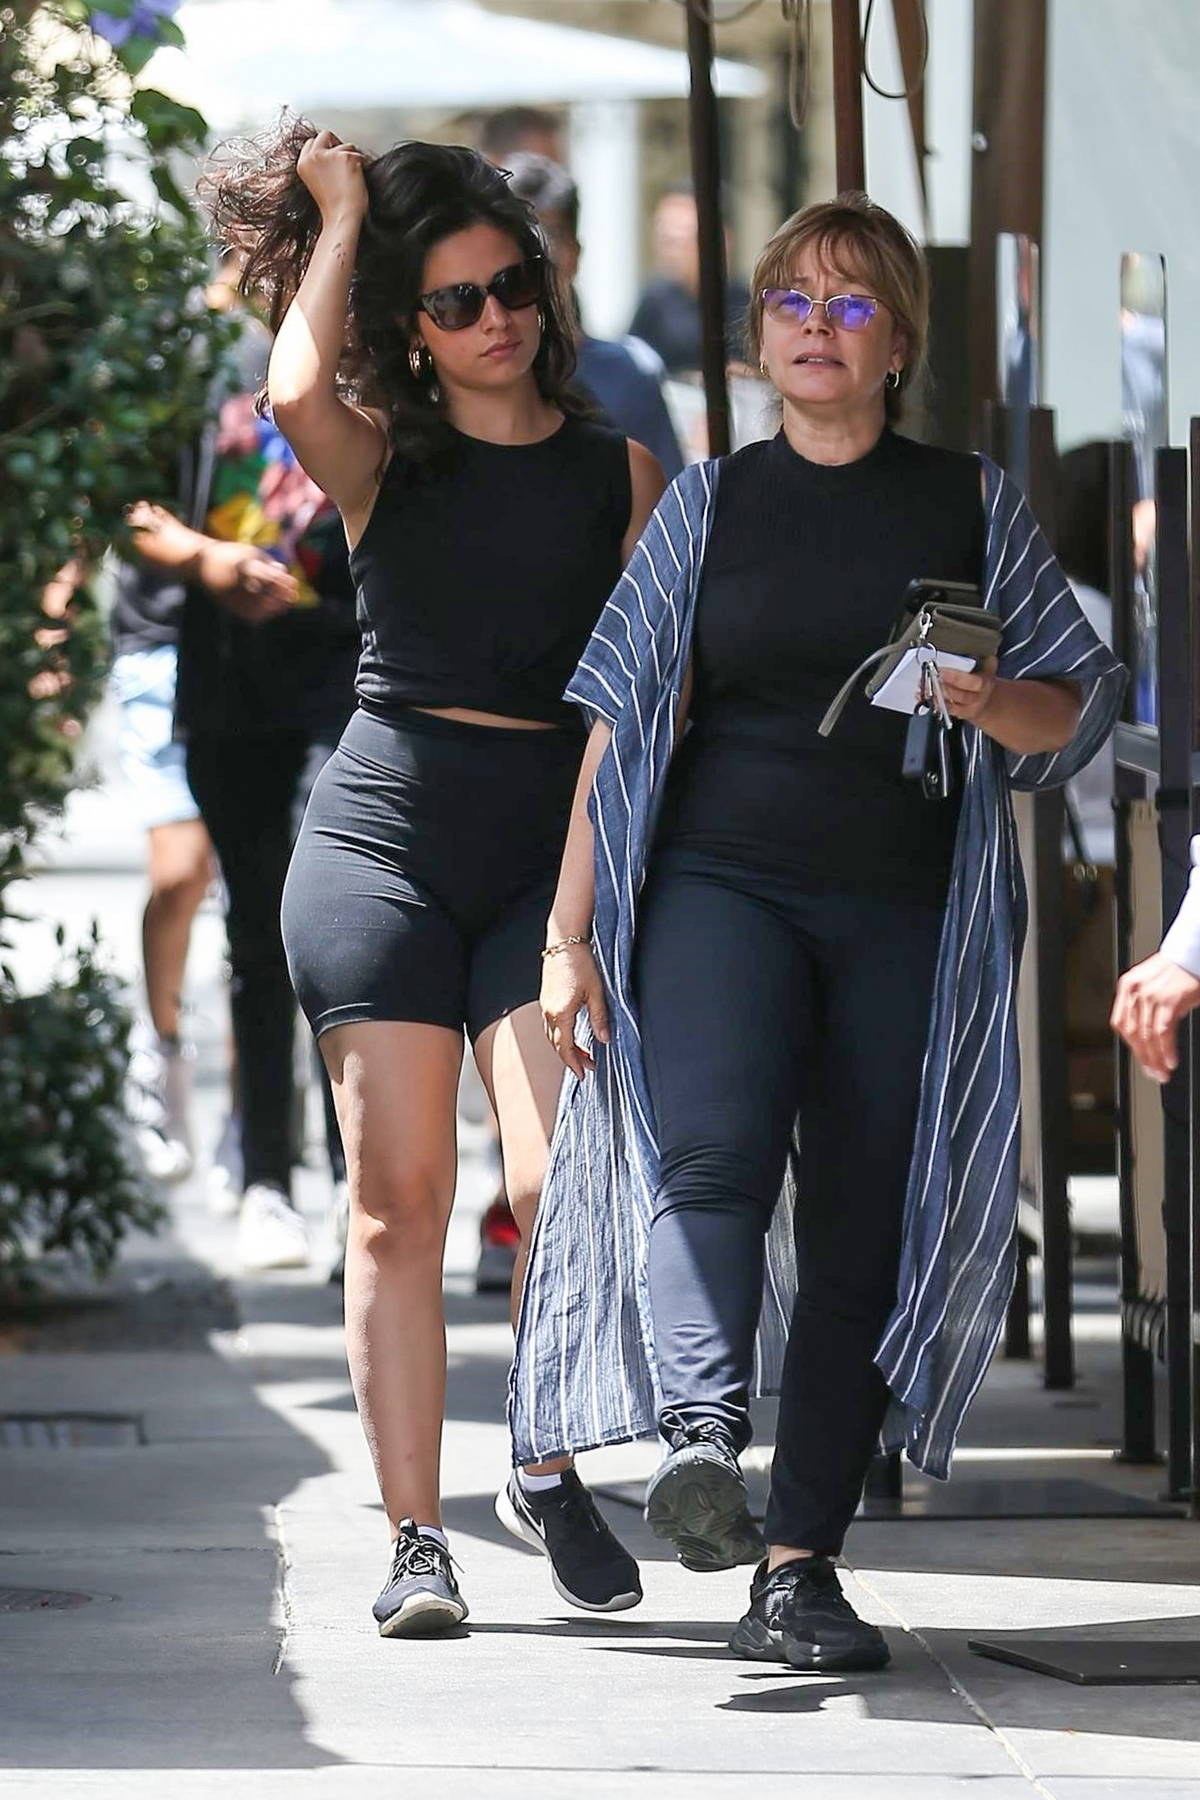 Camila Cabello wears a black crop top and shorts as she leaves Il Pastaio after lunch in Beverly Hills, California